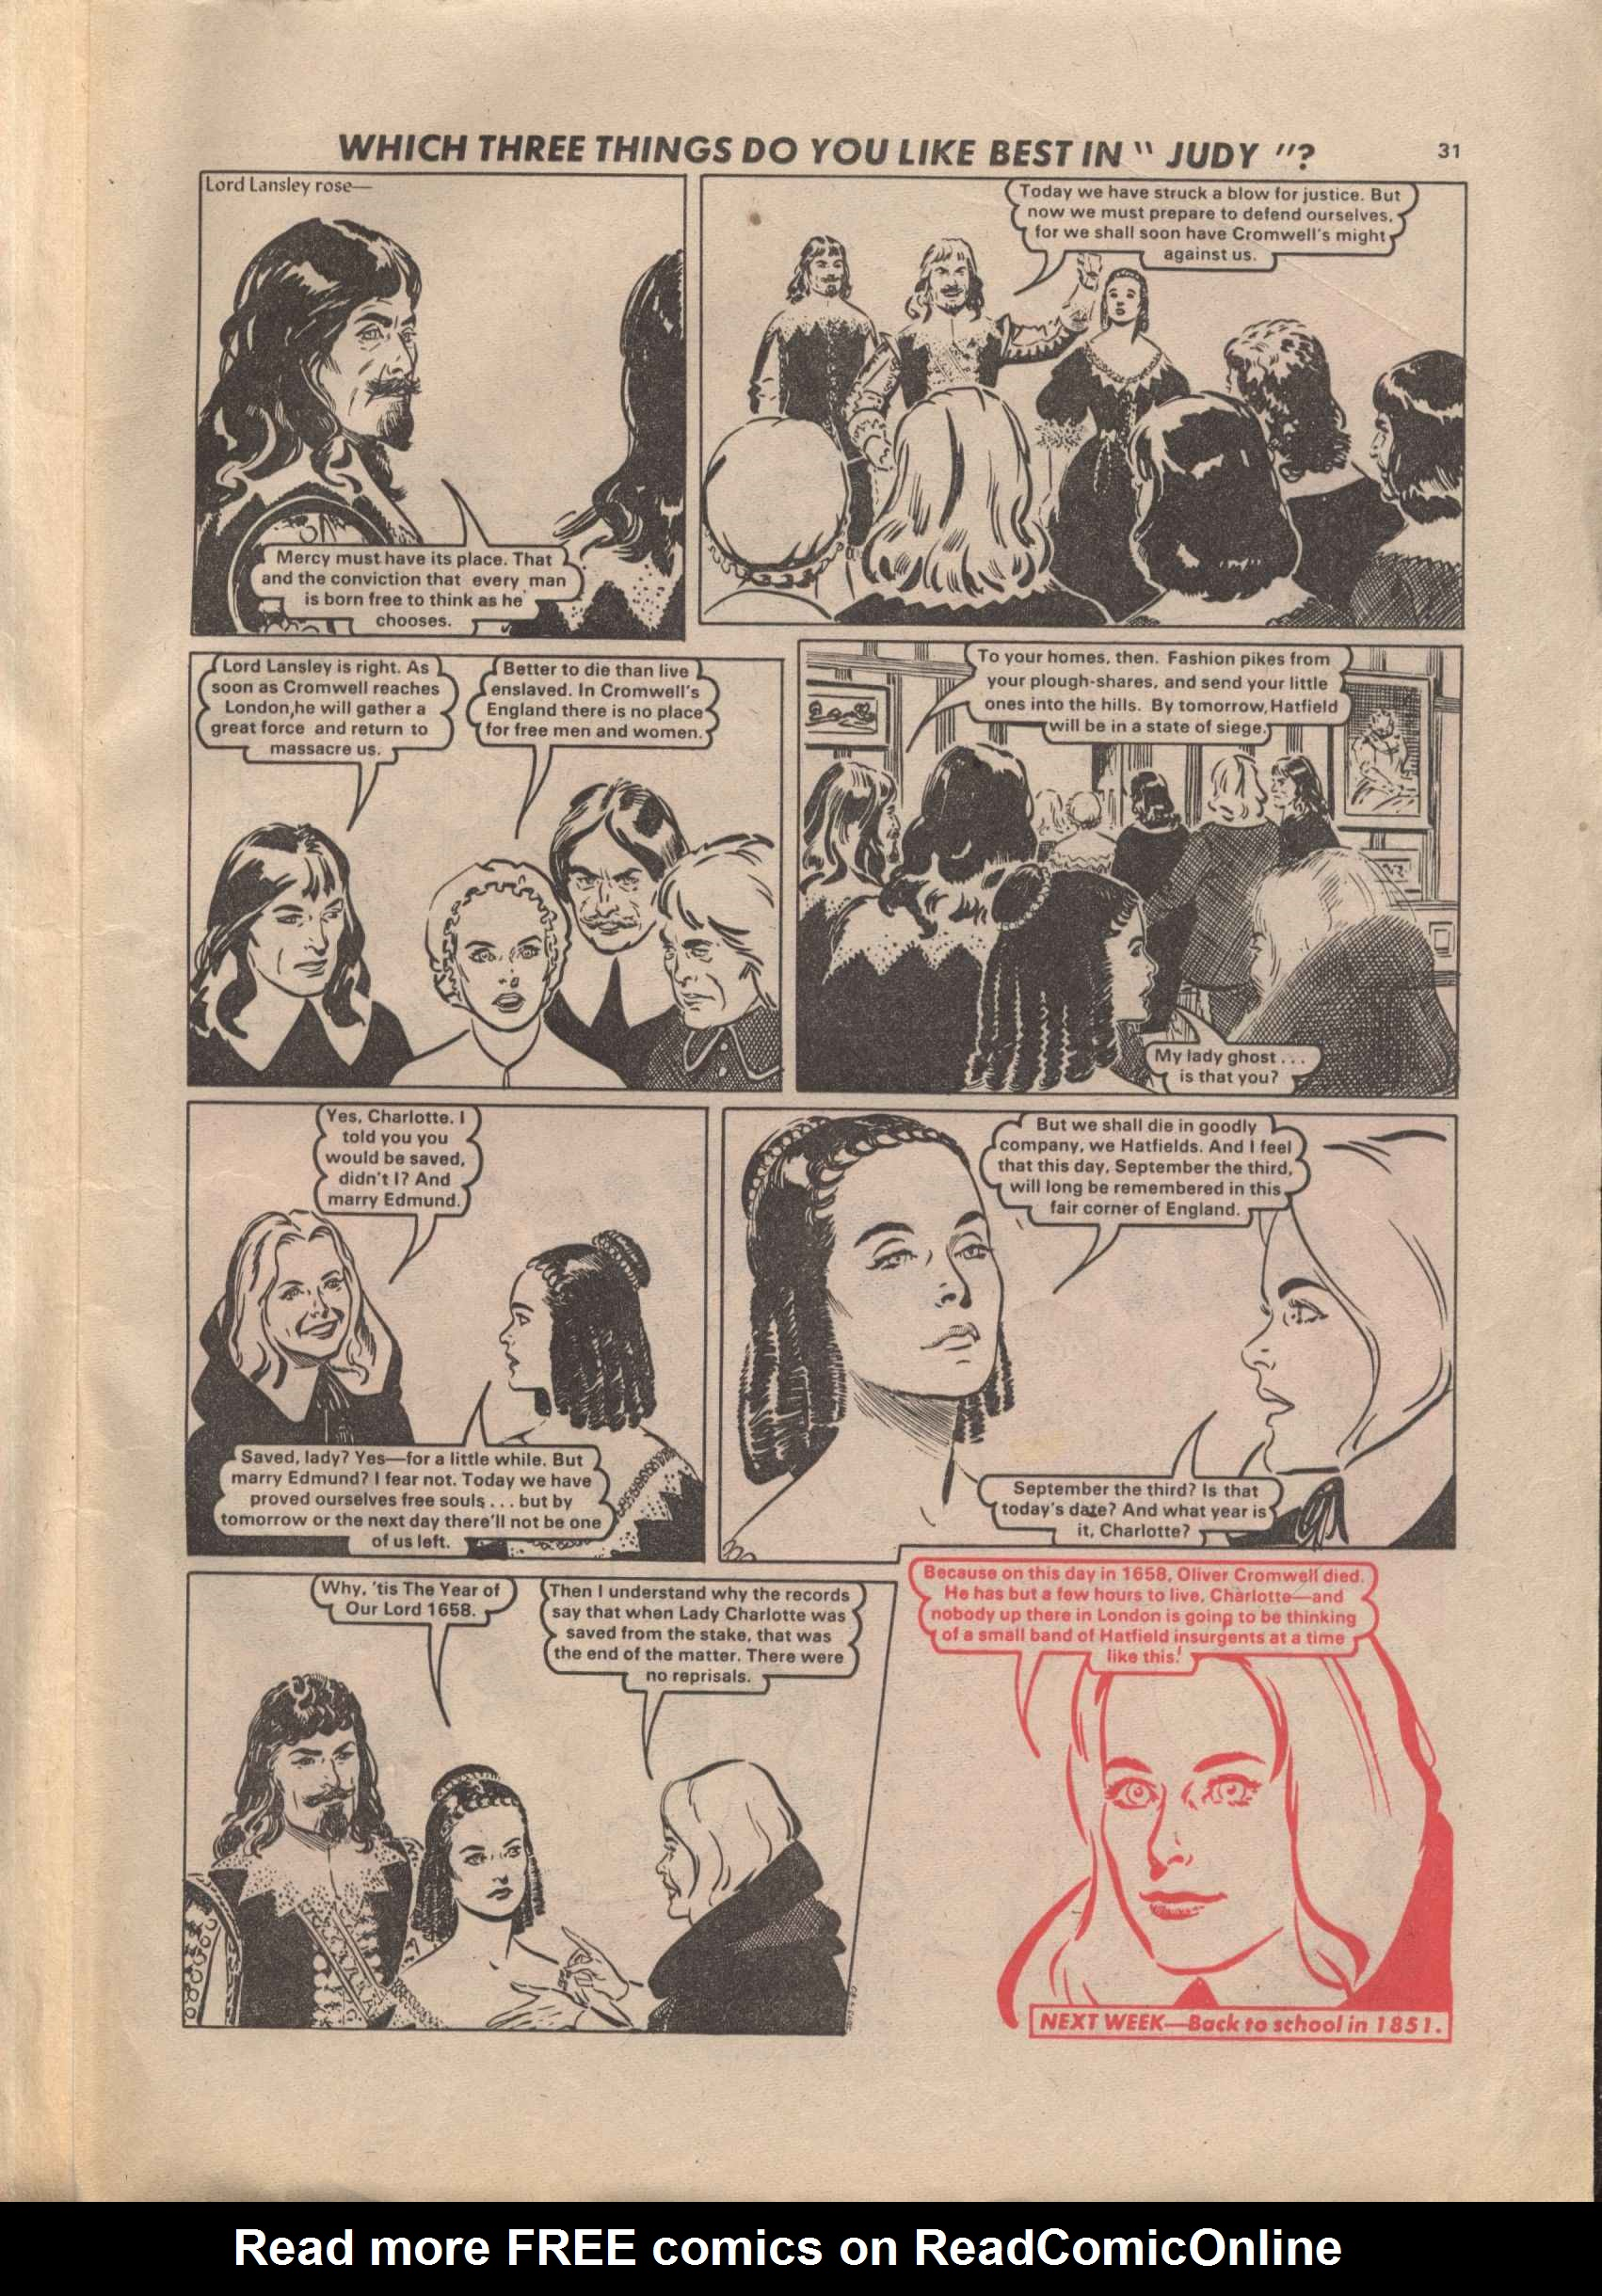 Read online Judy comic -  Issue #56 - 31